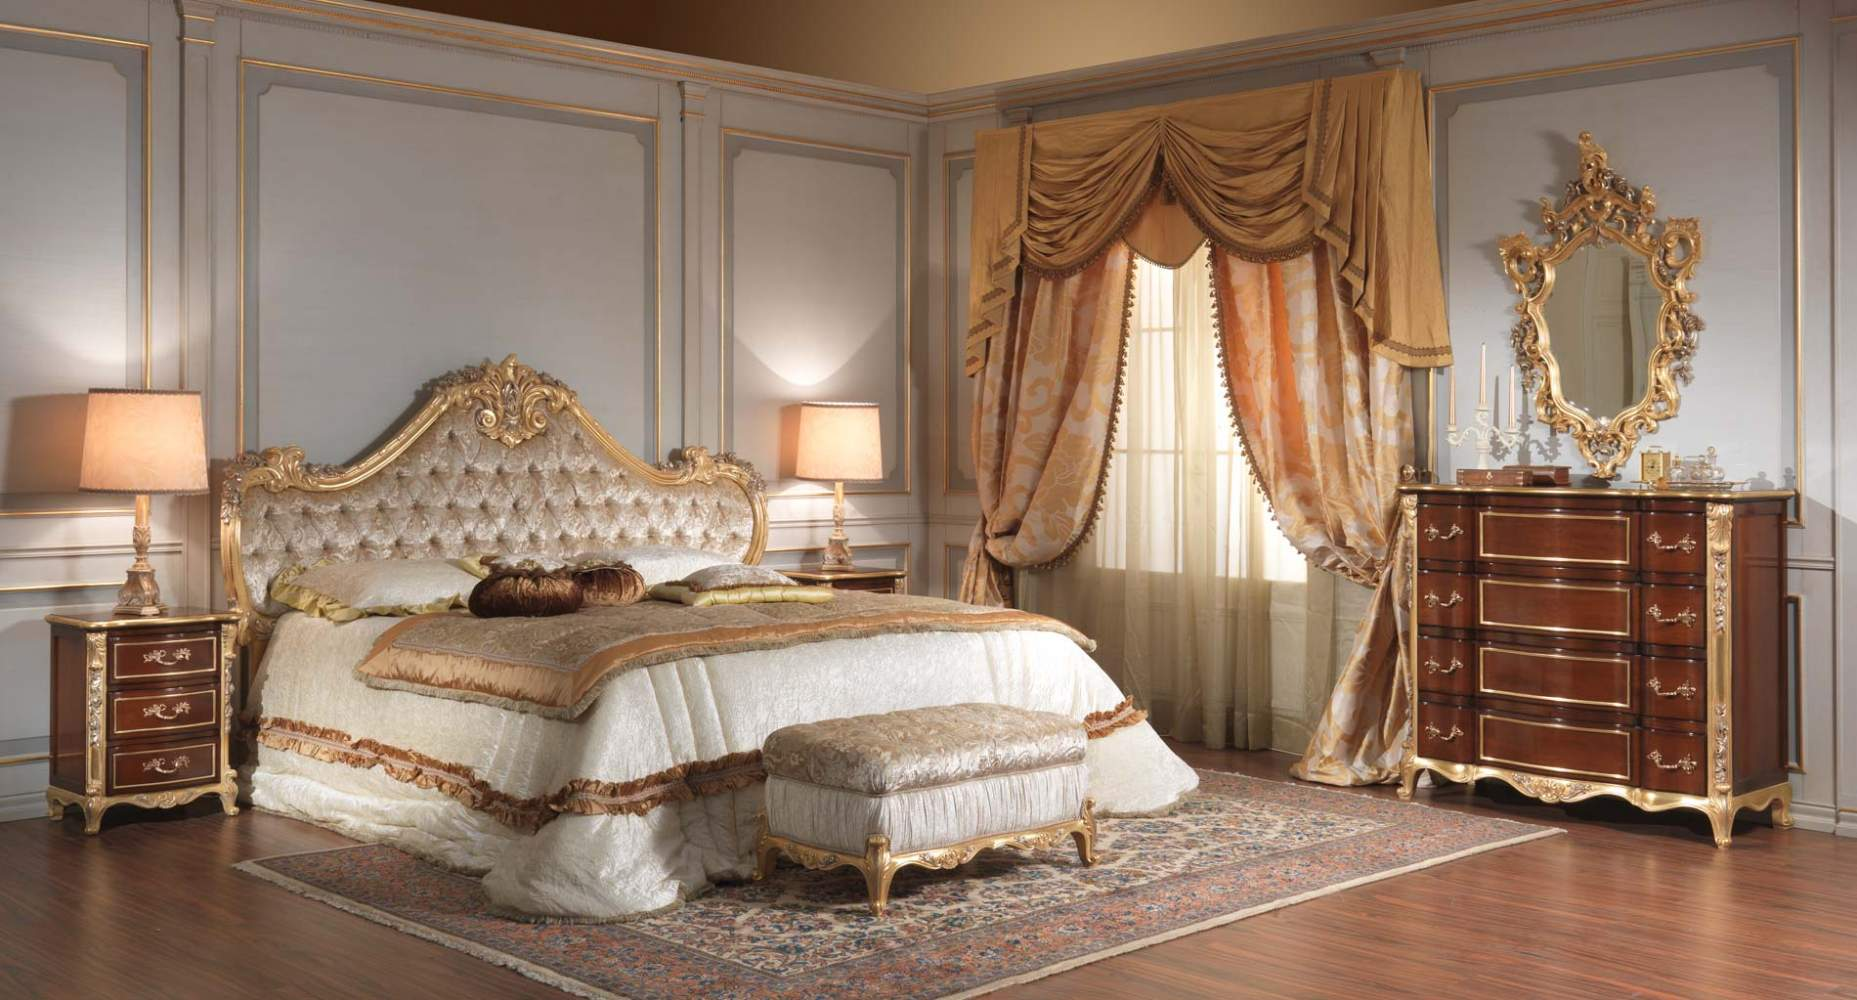 Classic italian 18th century bedroom  Vimercati Classic Furniture